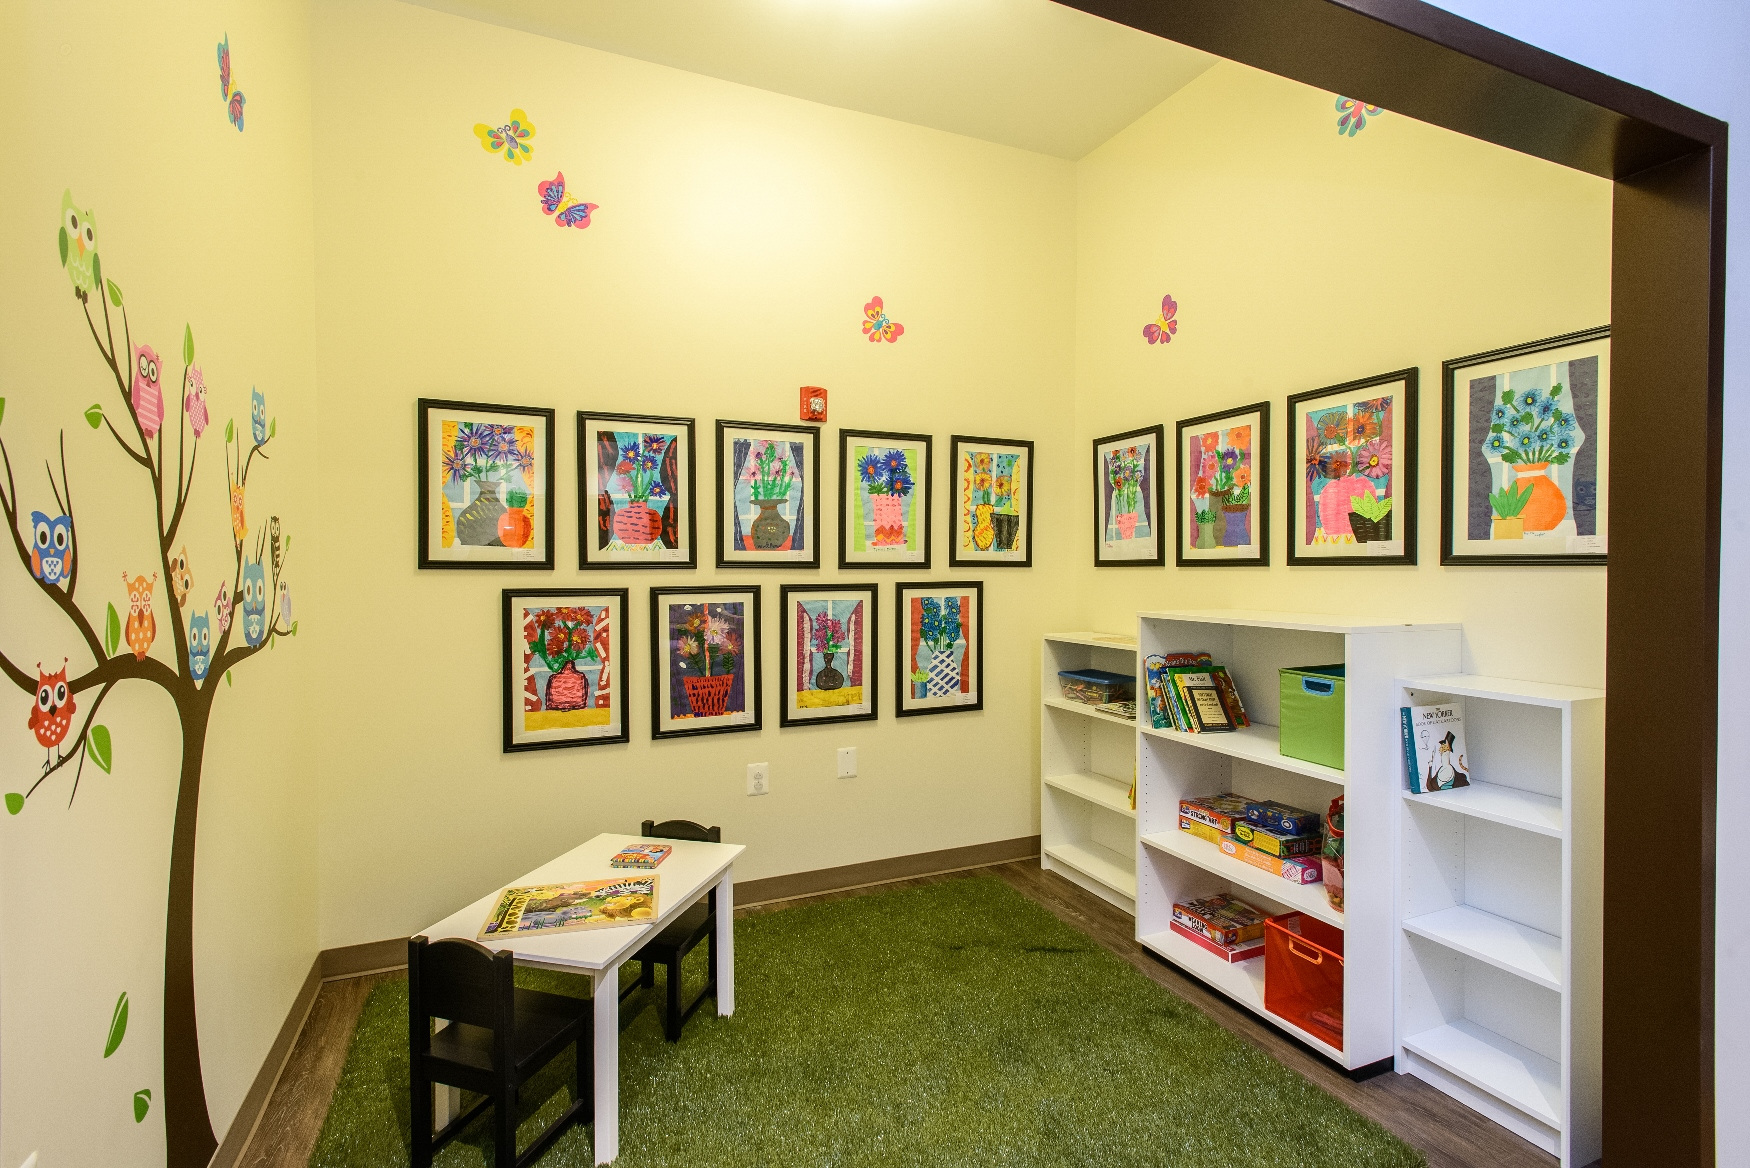 Children's room located inside Hospice of the Chesapeake